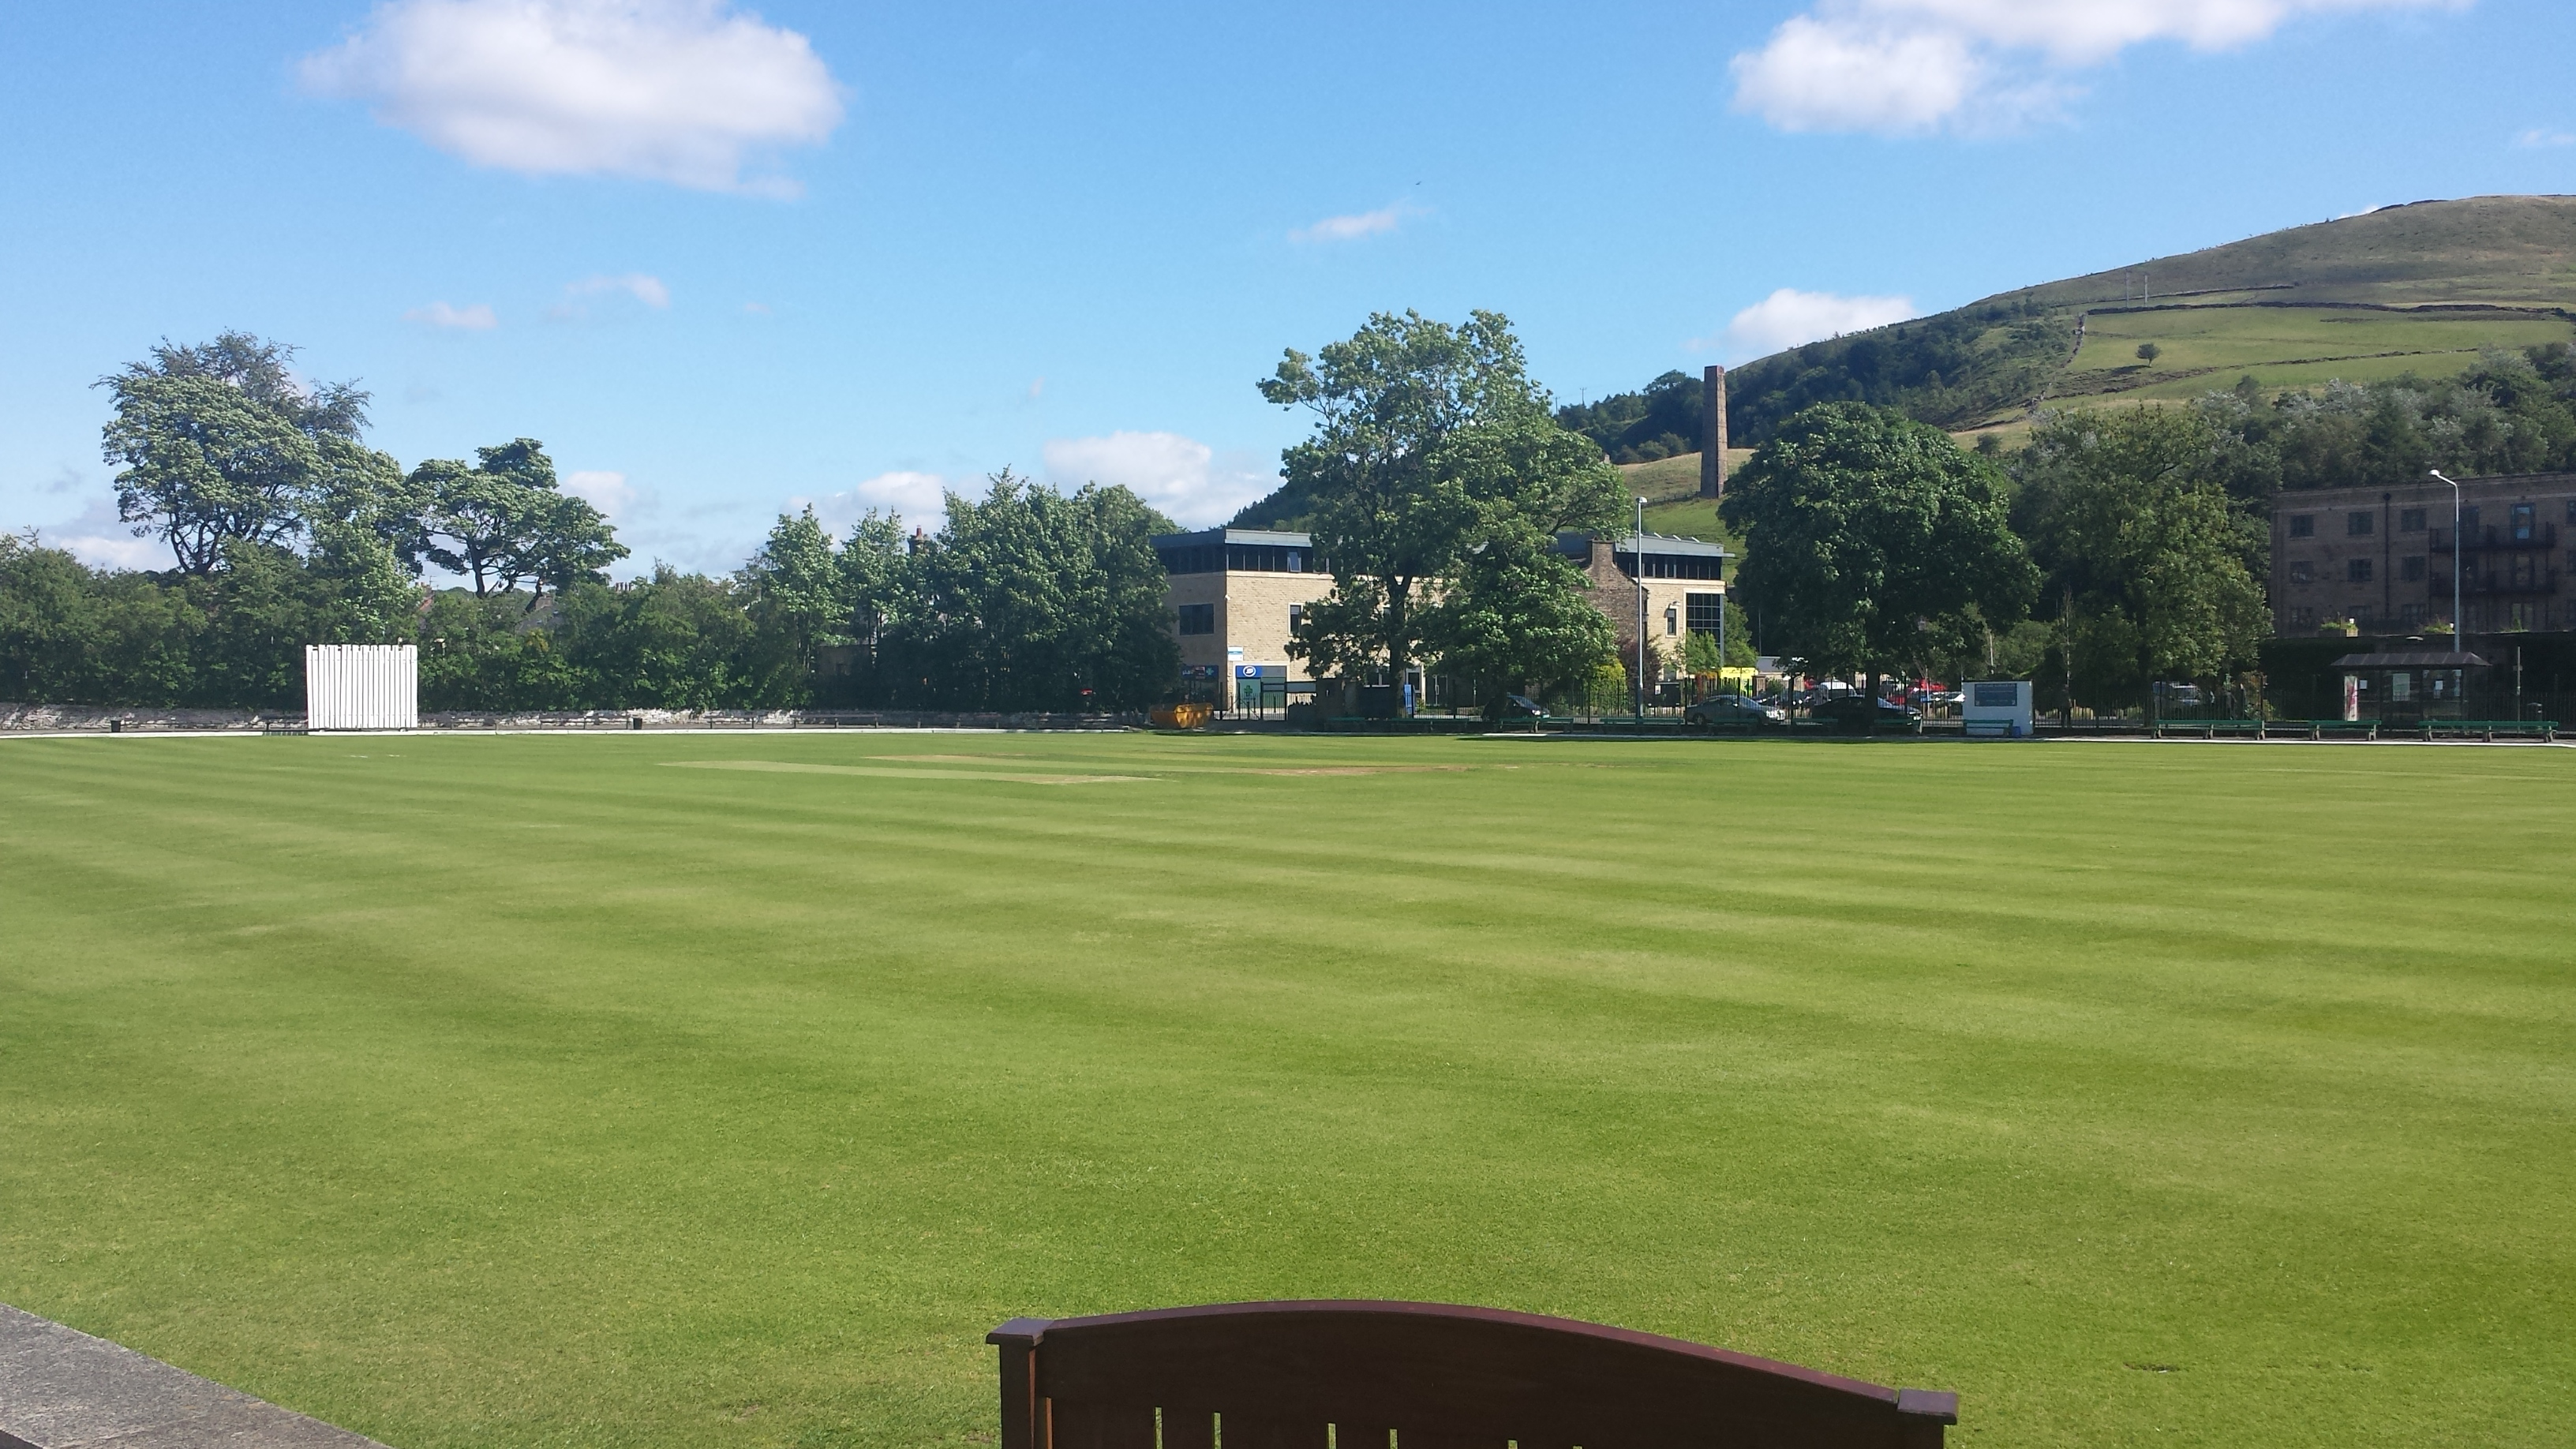 Rawtenstall Cricket Club Bacup Road